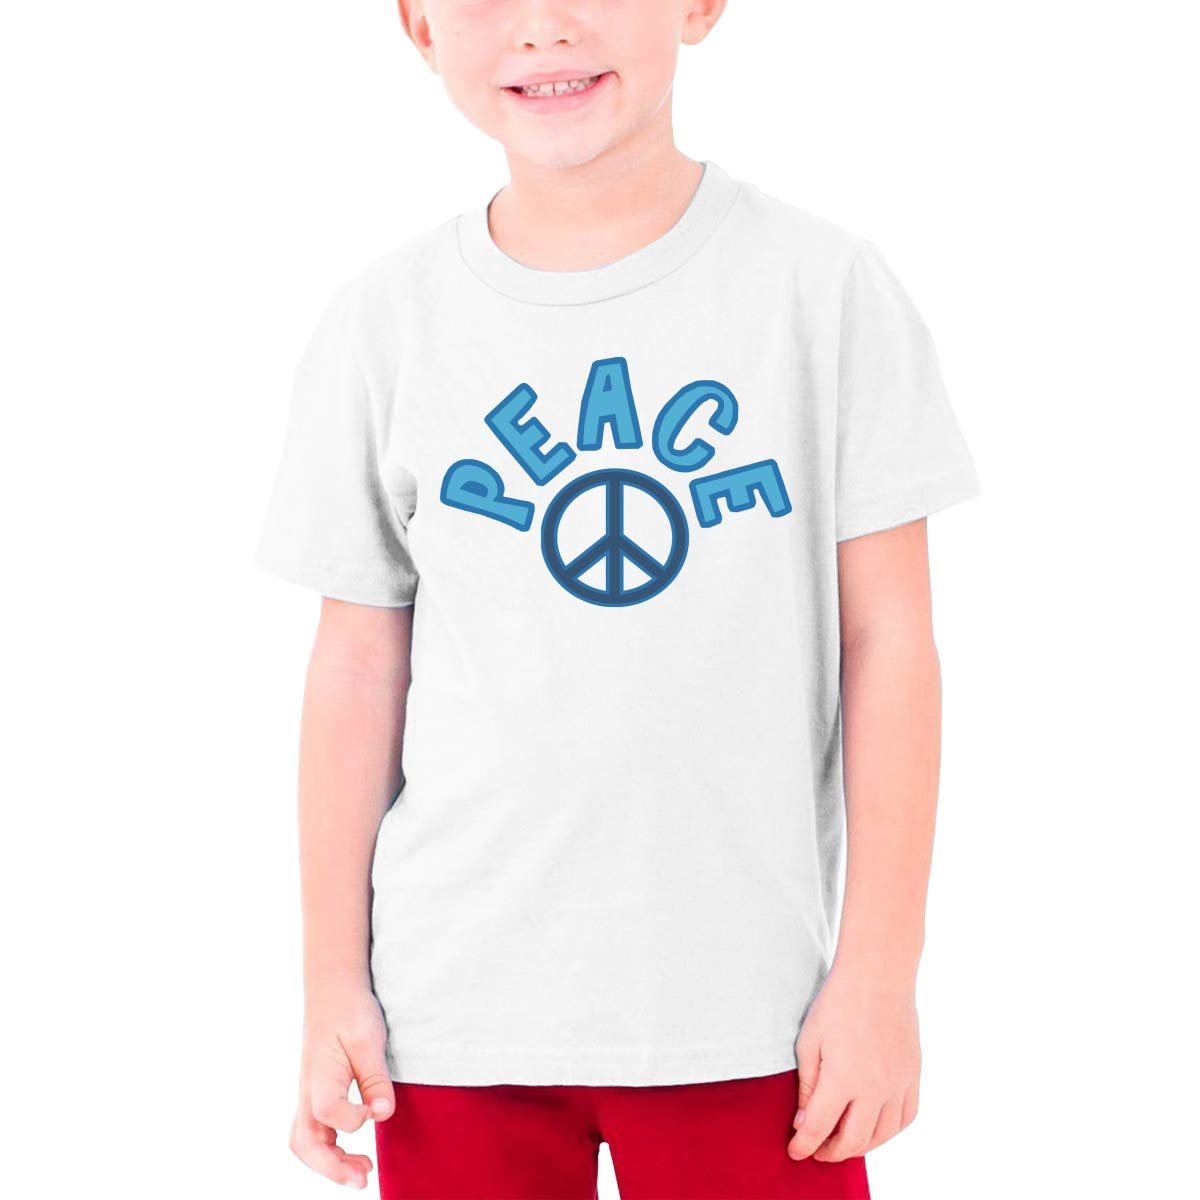 Youth Graphic Tshirts Teenage Boys Girls Short Sleeve T-Shirt World Peace Sign Printed Round Collar T Shirt Tees Tops